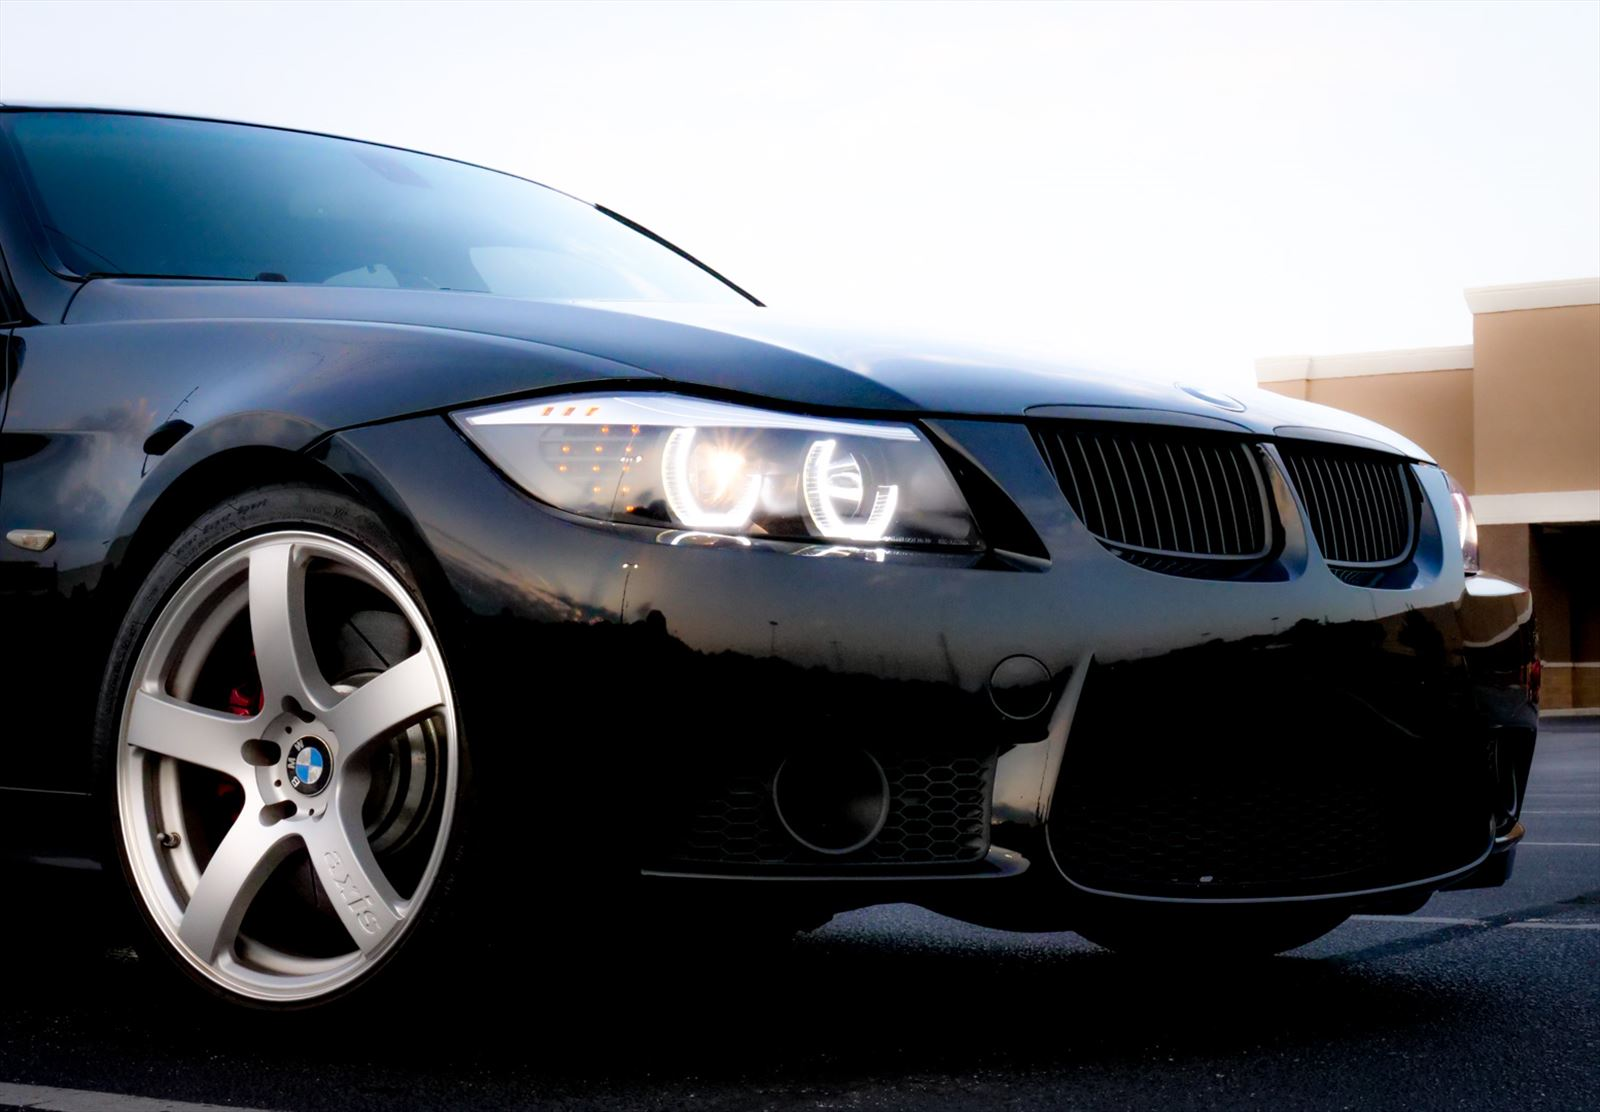 2007 BMW 335i - Photo Gallery Photo